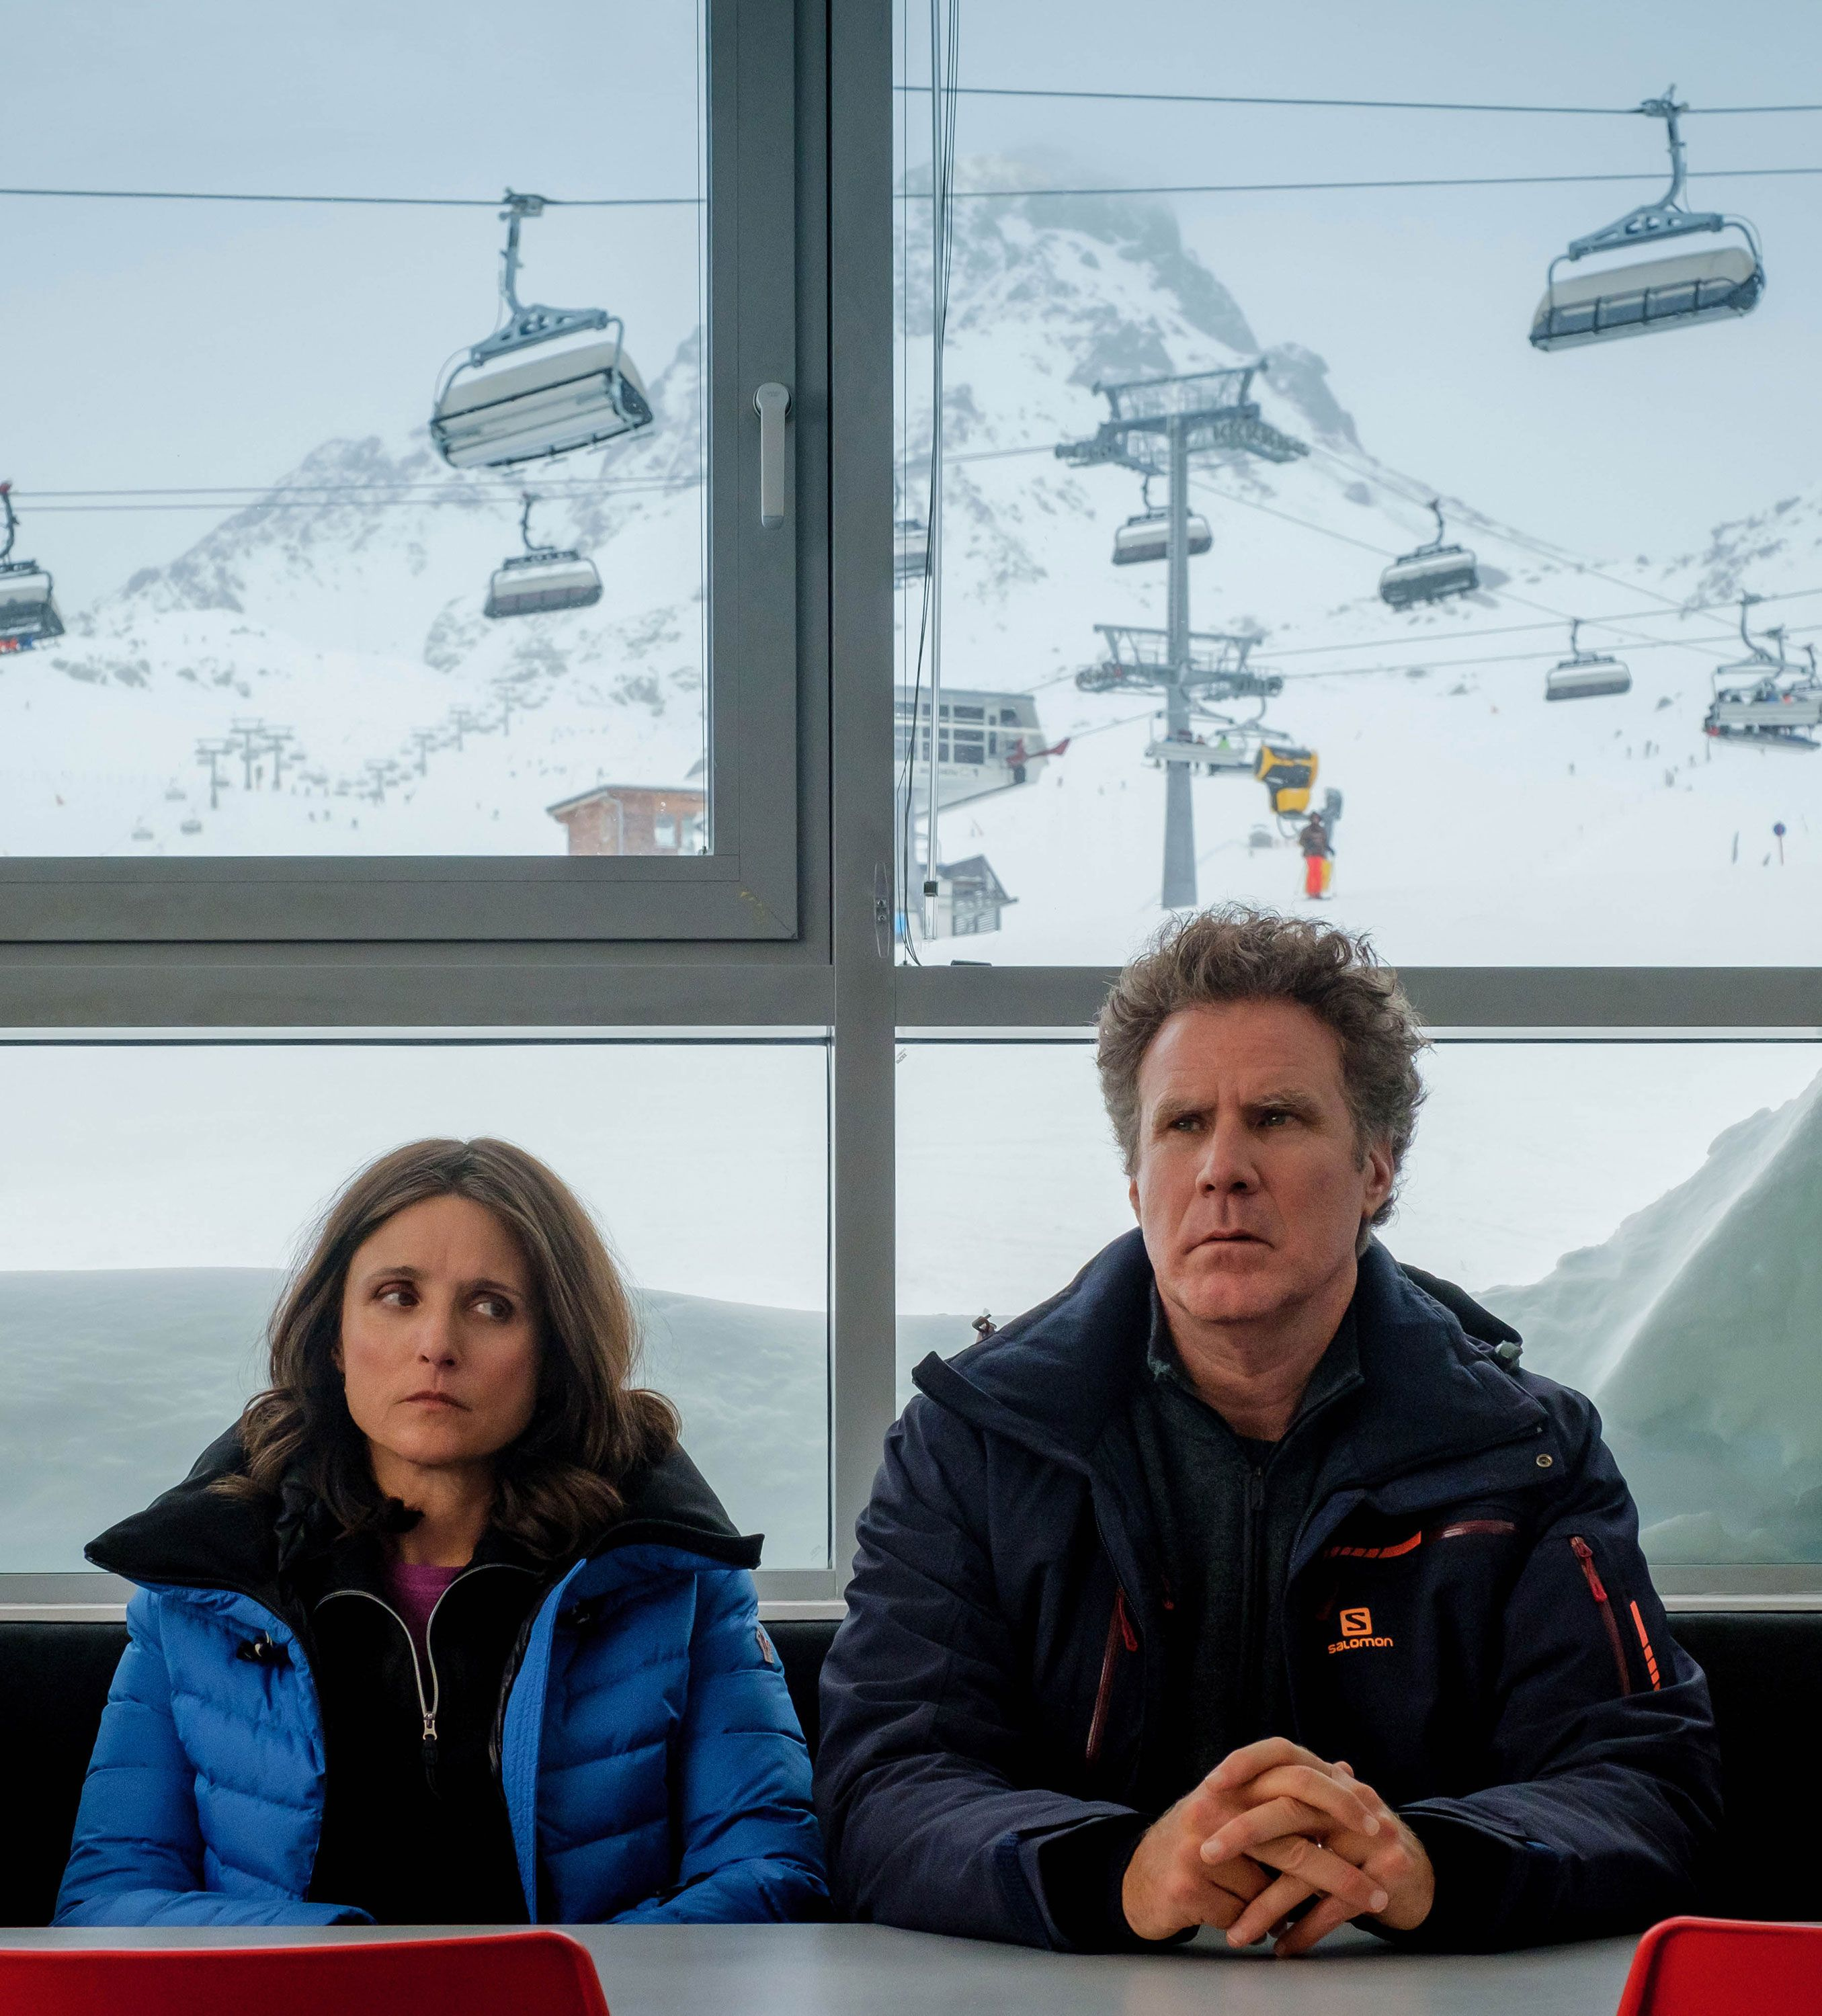 Julia Louis-Dreyfus on What She'd Do If Her Own Husband Bolted During an Avalanche